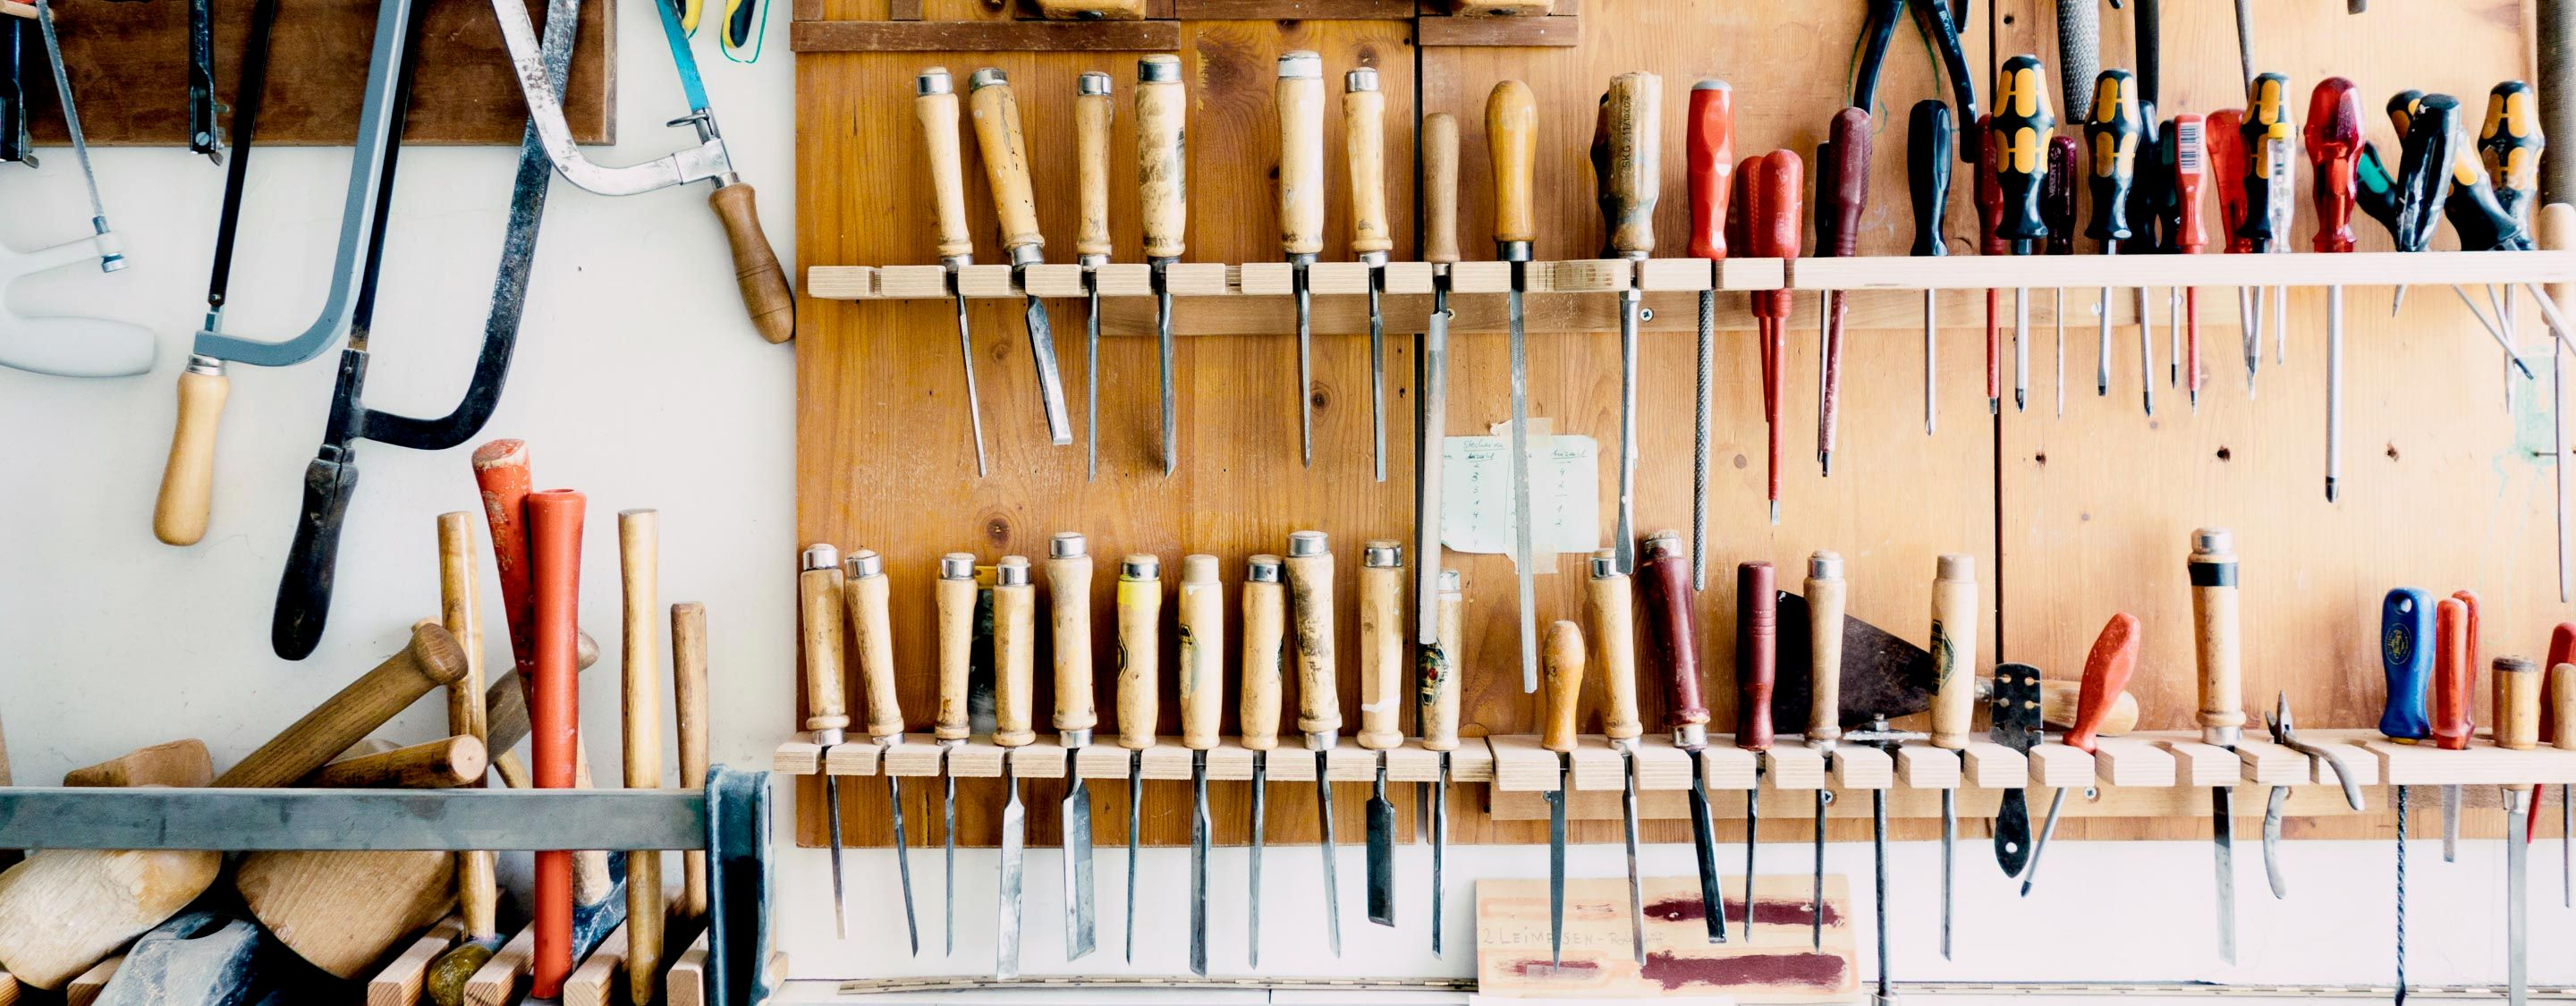 organized tools in workshop